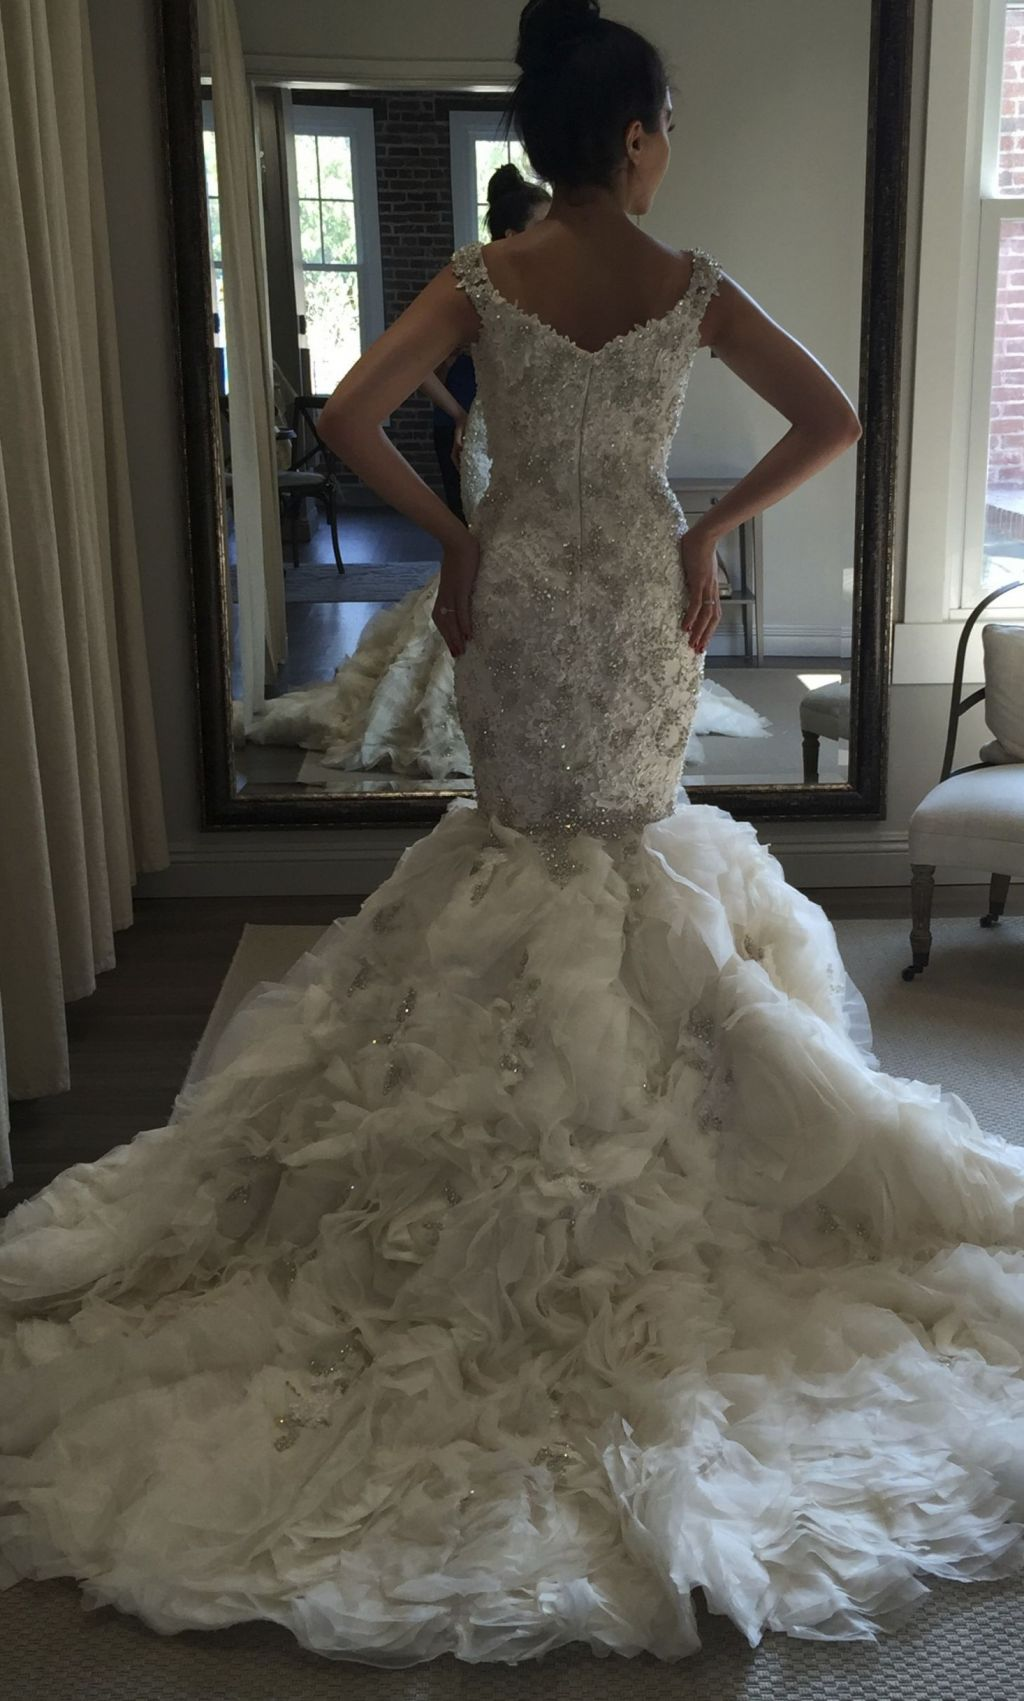 Ysa makino 4 900 size 6 used wedding dresses for Ysa makino wedding dress